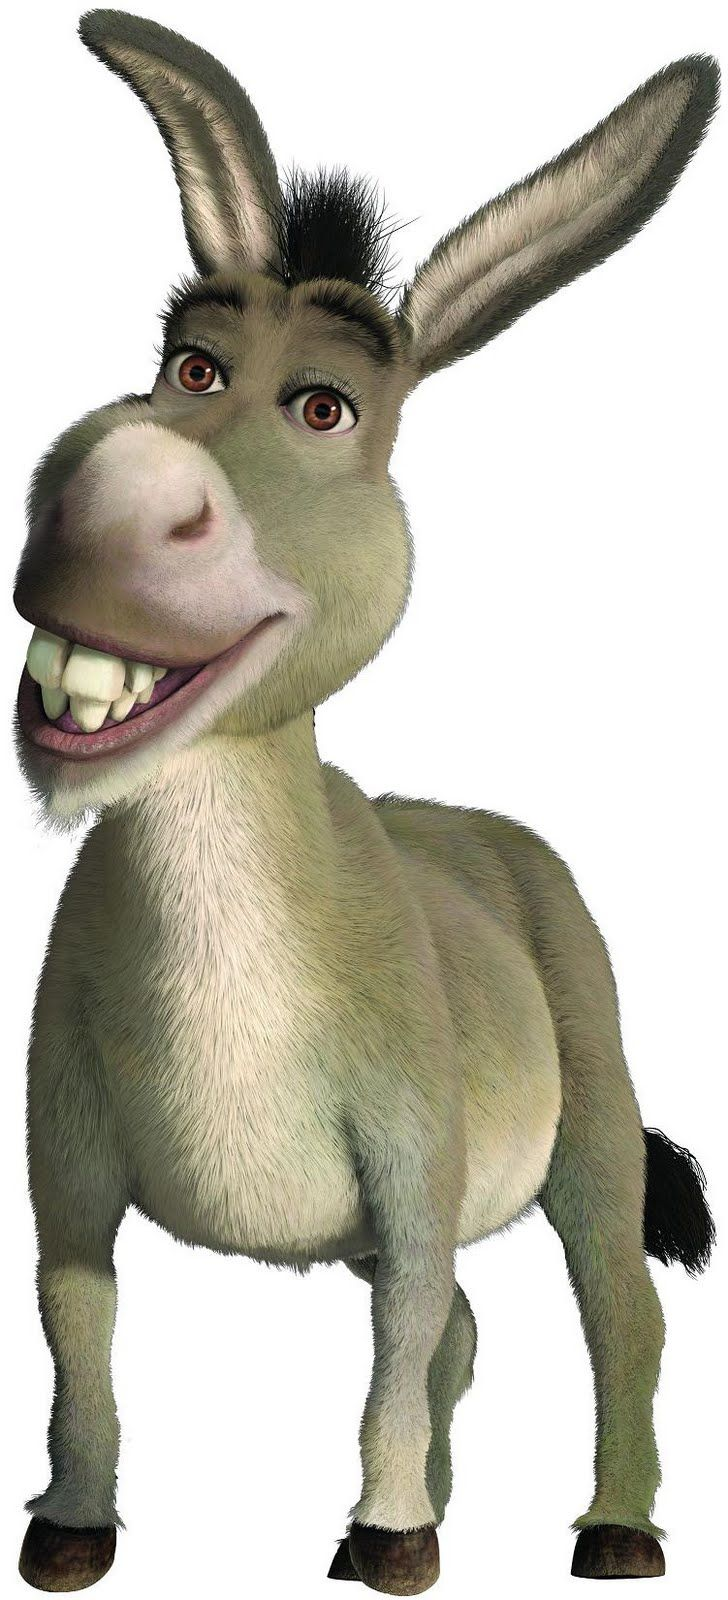 Shrek 2 Cartoon Characters : He can be donkey from shrek things that remind me of my